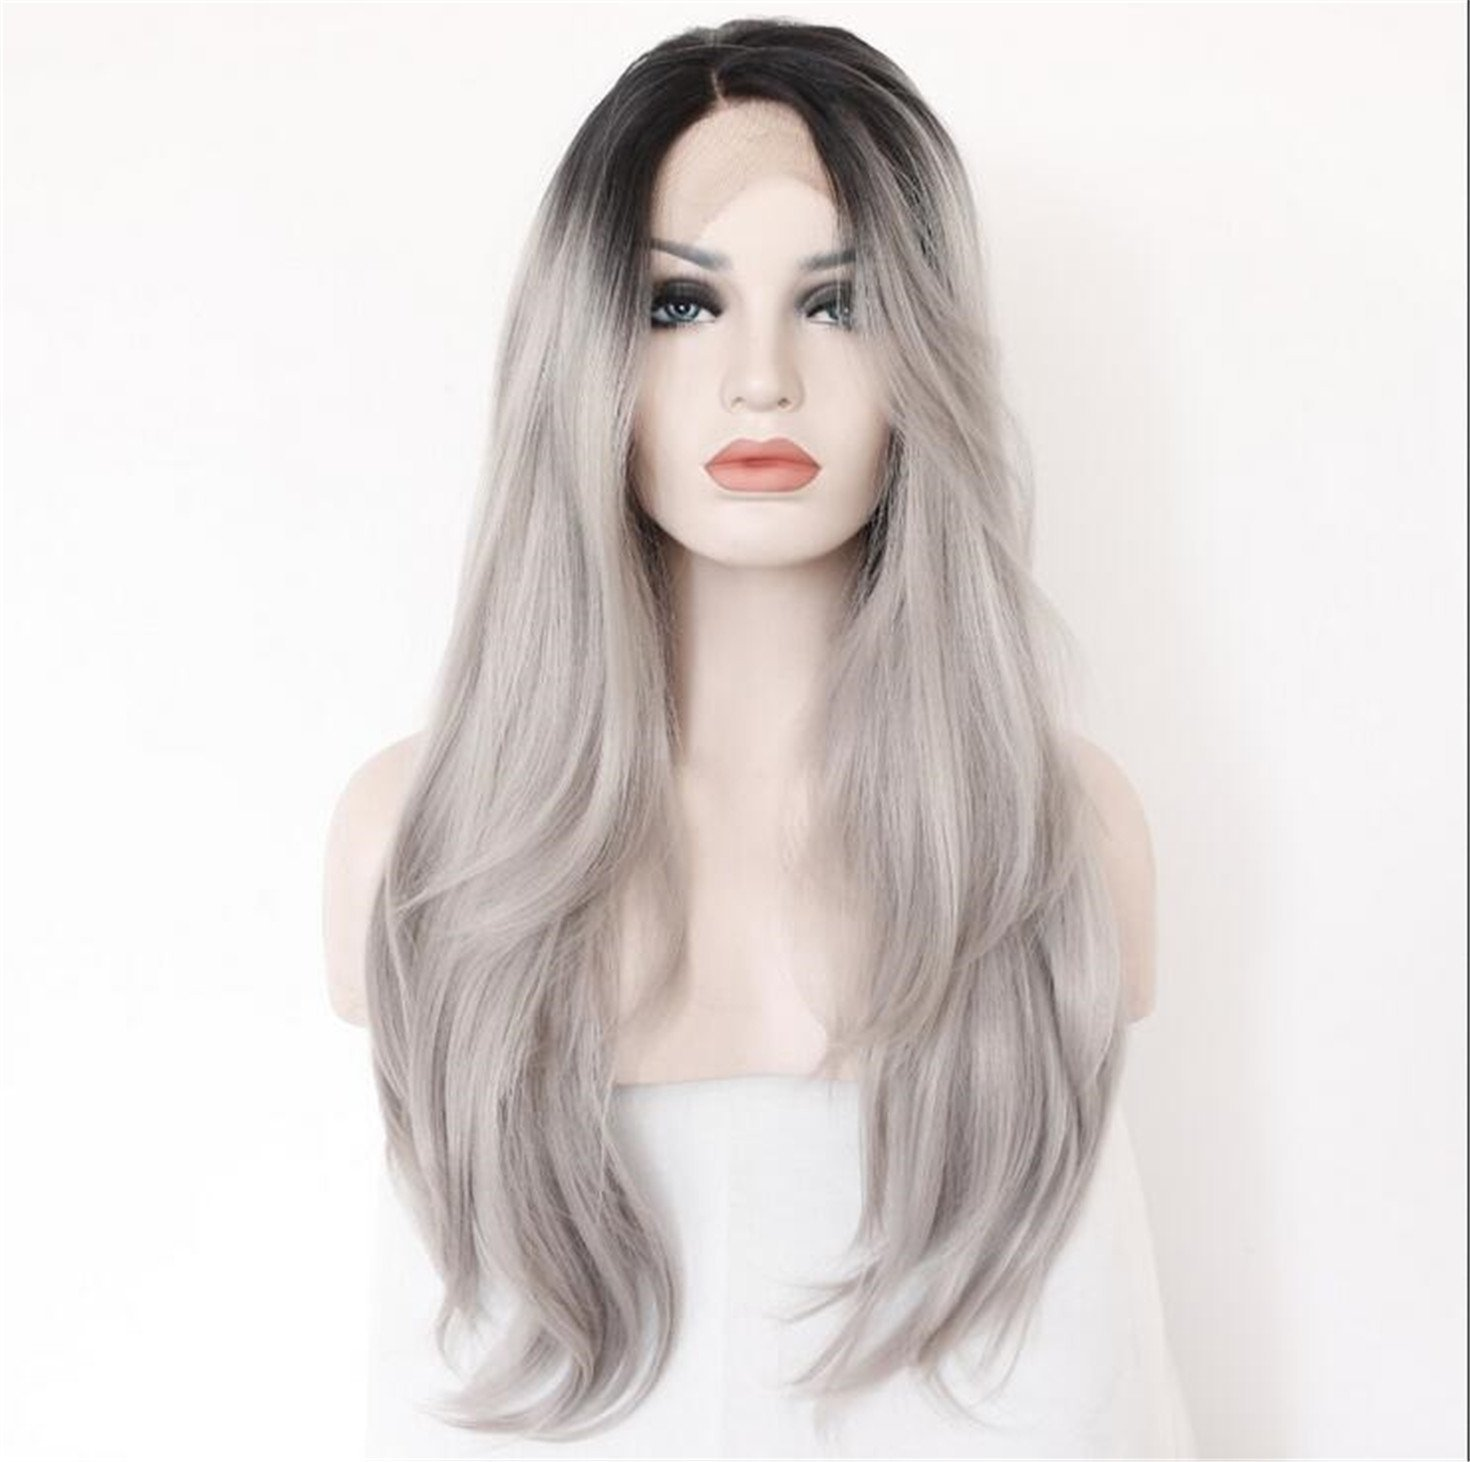 Cool2day 2 Tones Synthetic Lace Front Wig Gray Grey Silver Ombre Hand Tied Wavy Wigs Dark Roots Heat Resistant Fiber Hair LS010079